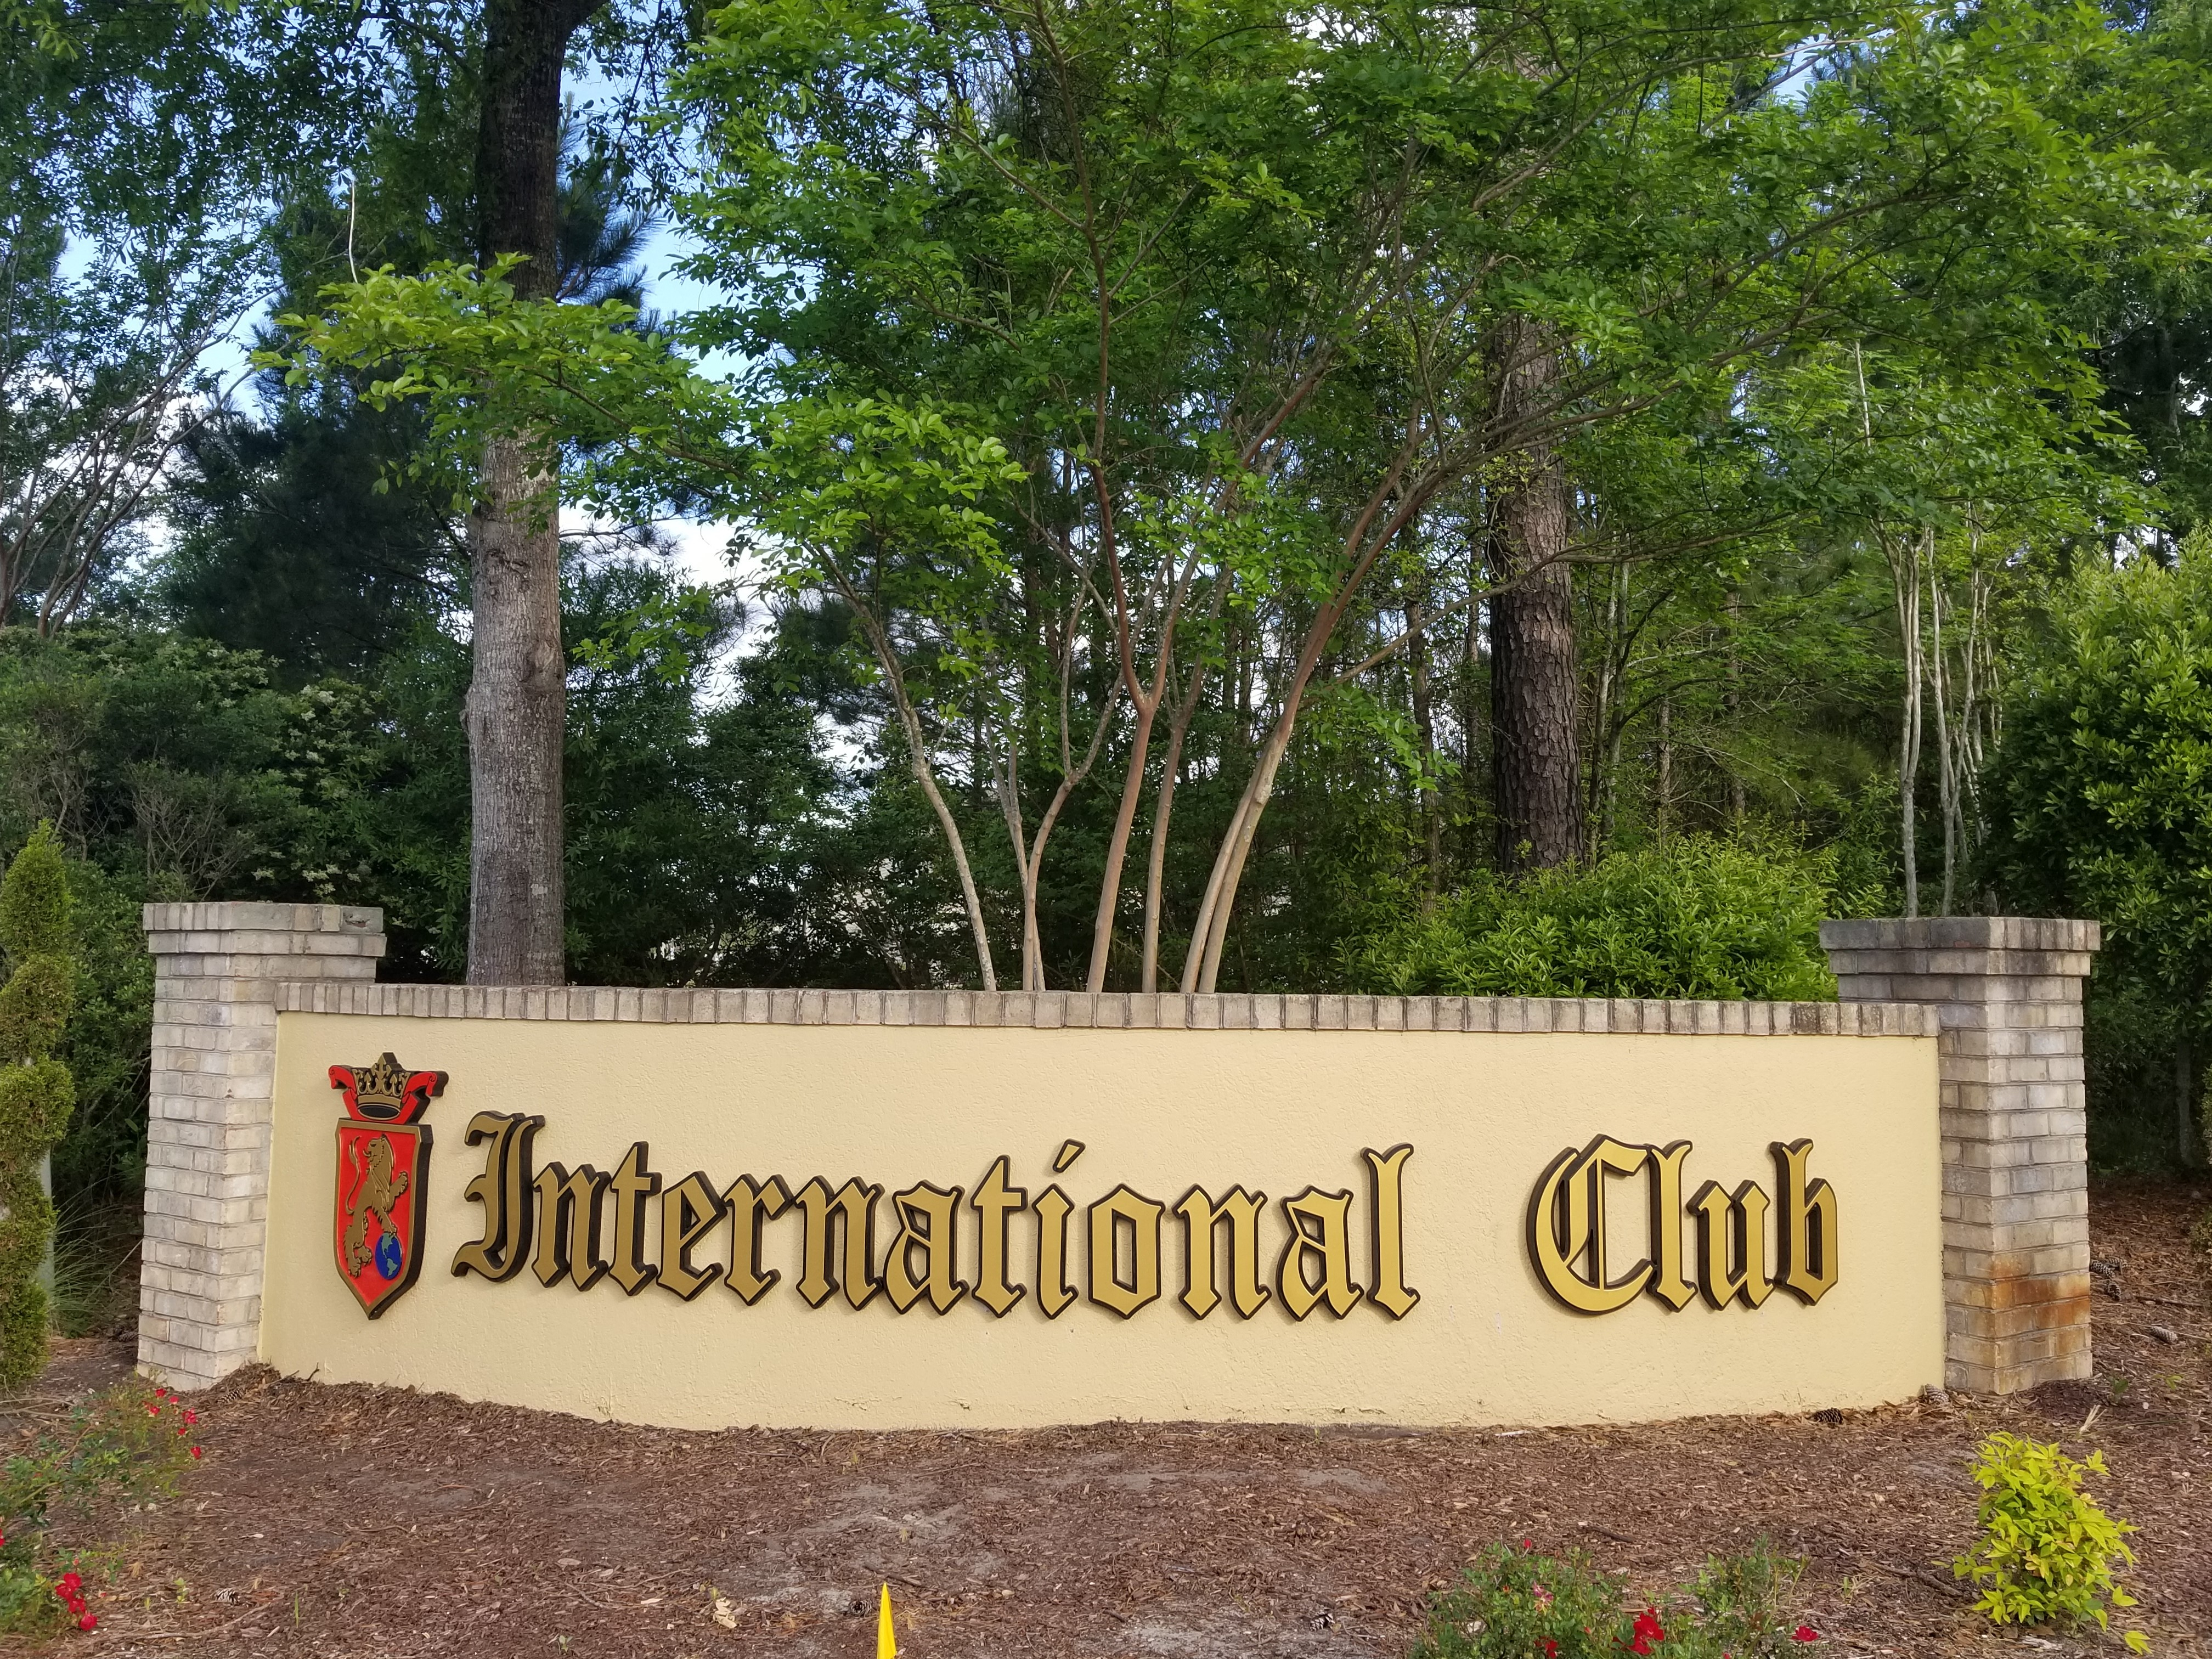 Available homes for sale in The International Club